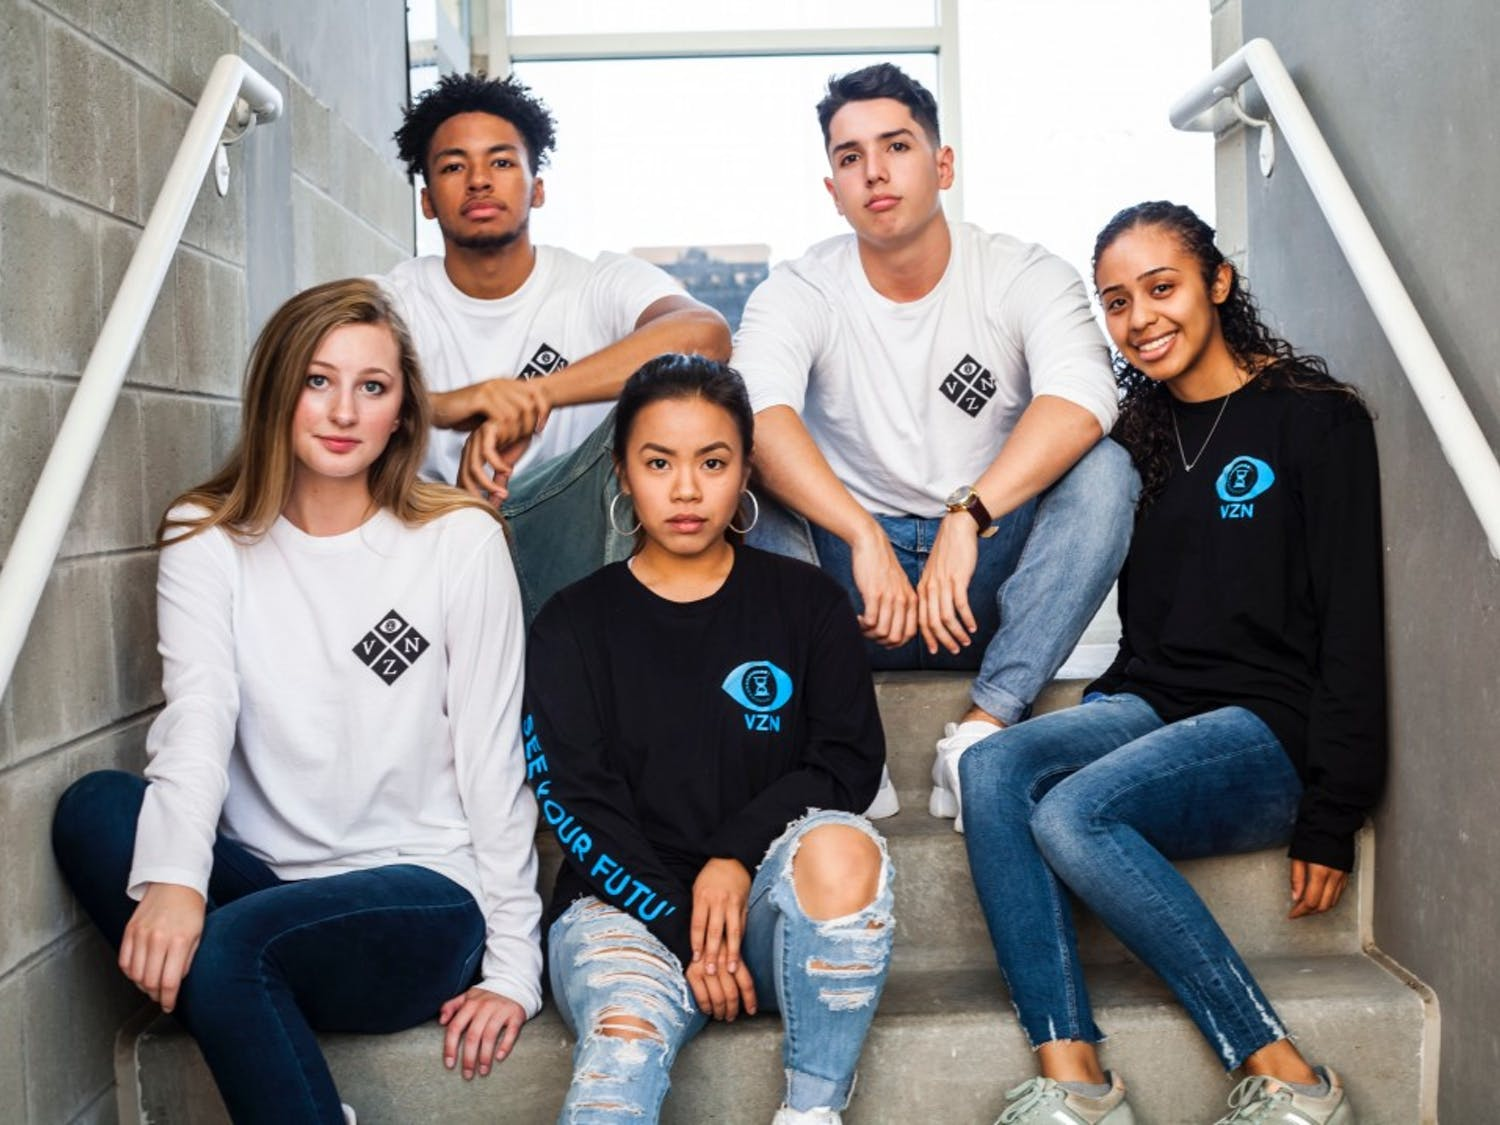 VZN Clothing was founded by UNC student Jalon Cooper. Photo courtesy of Jalon Cooper.